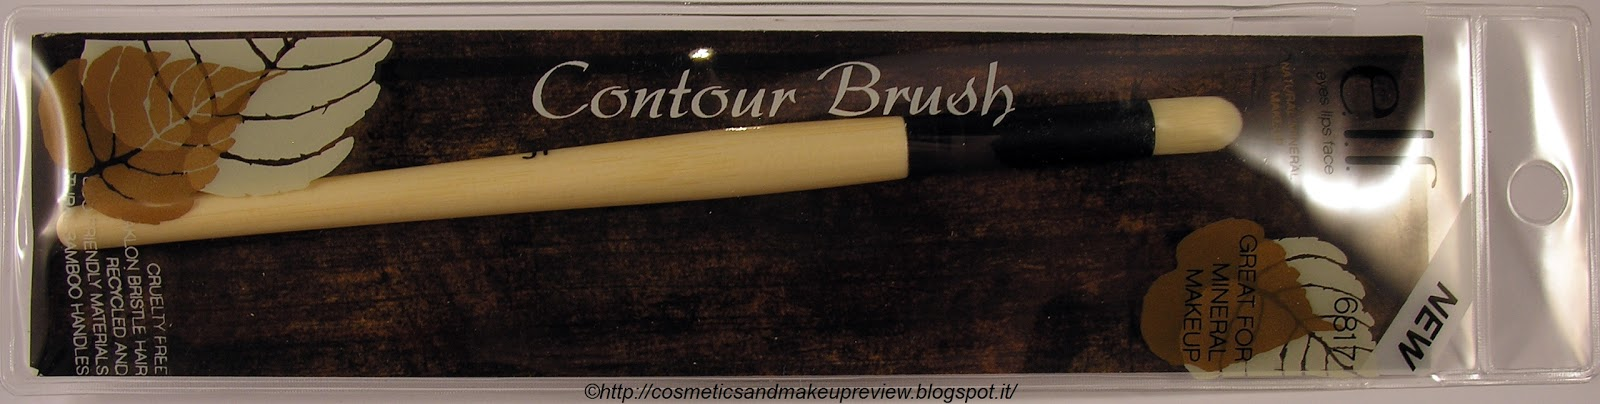 E.L.F. Contour Brush - packaging